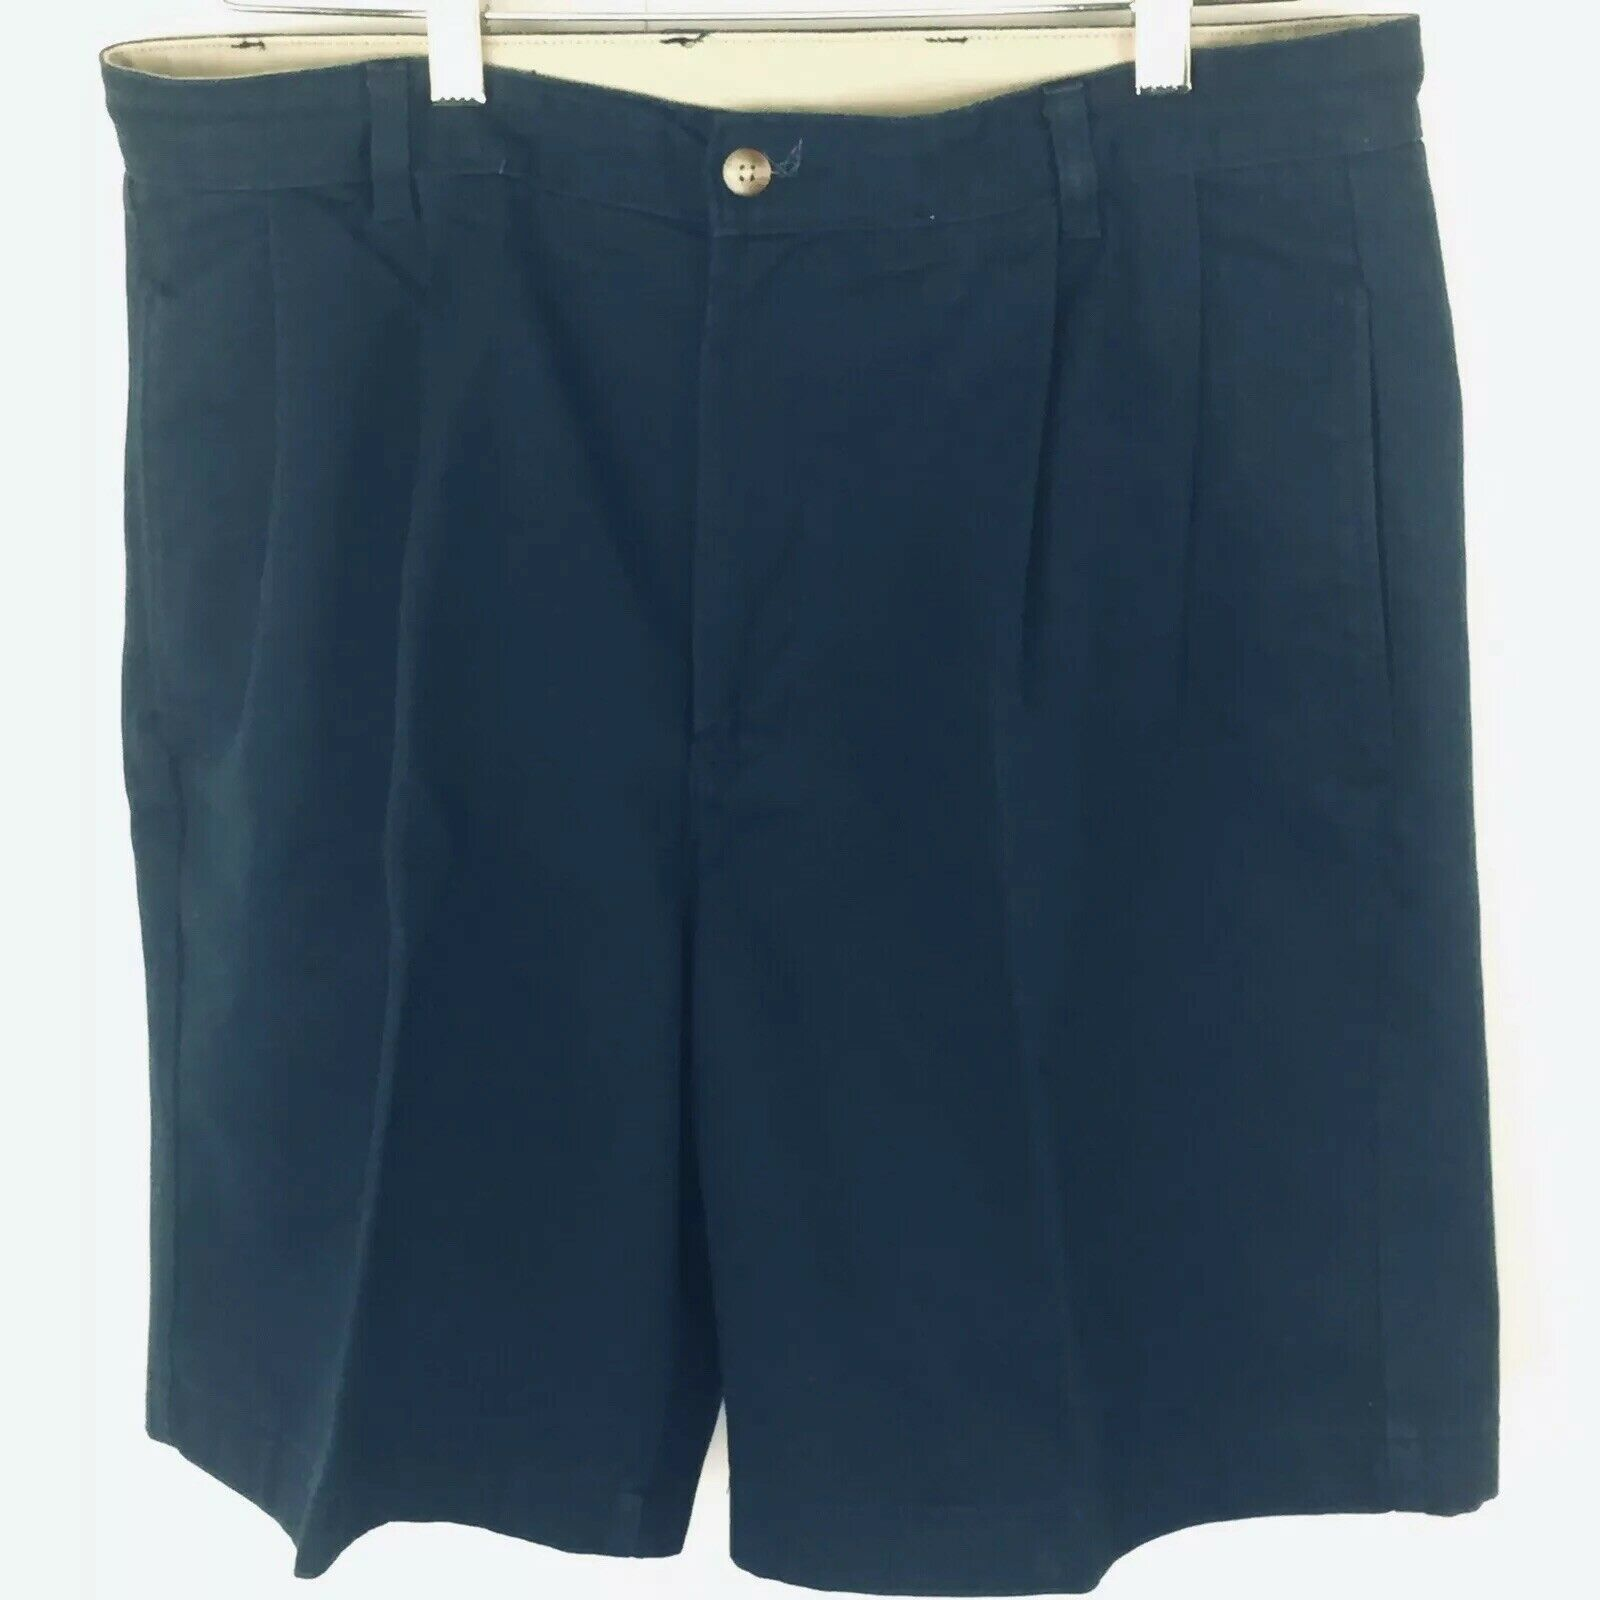 Roundtree and York Mens Shorts size 34 Navy Blue Cotton Pleated Front  image 2